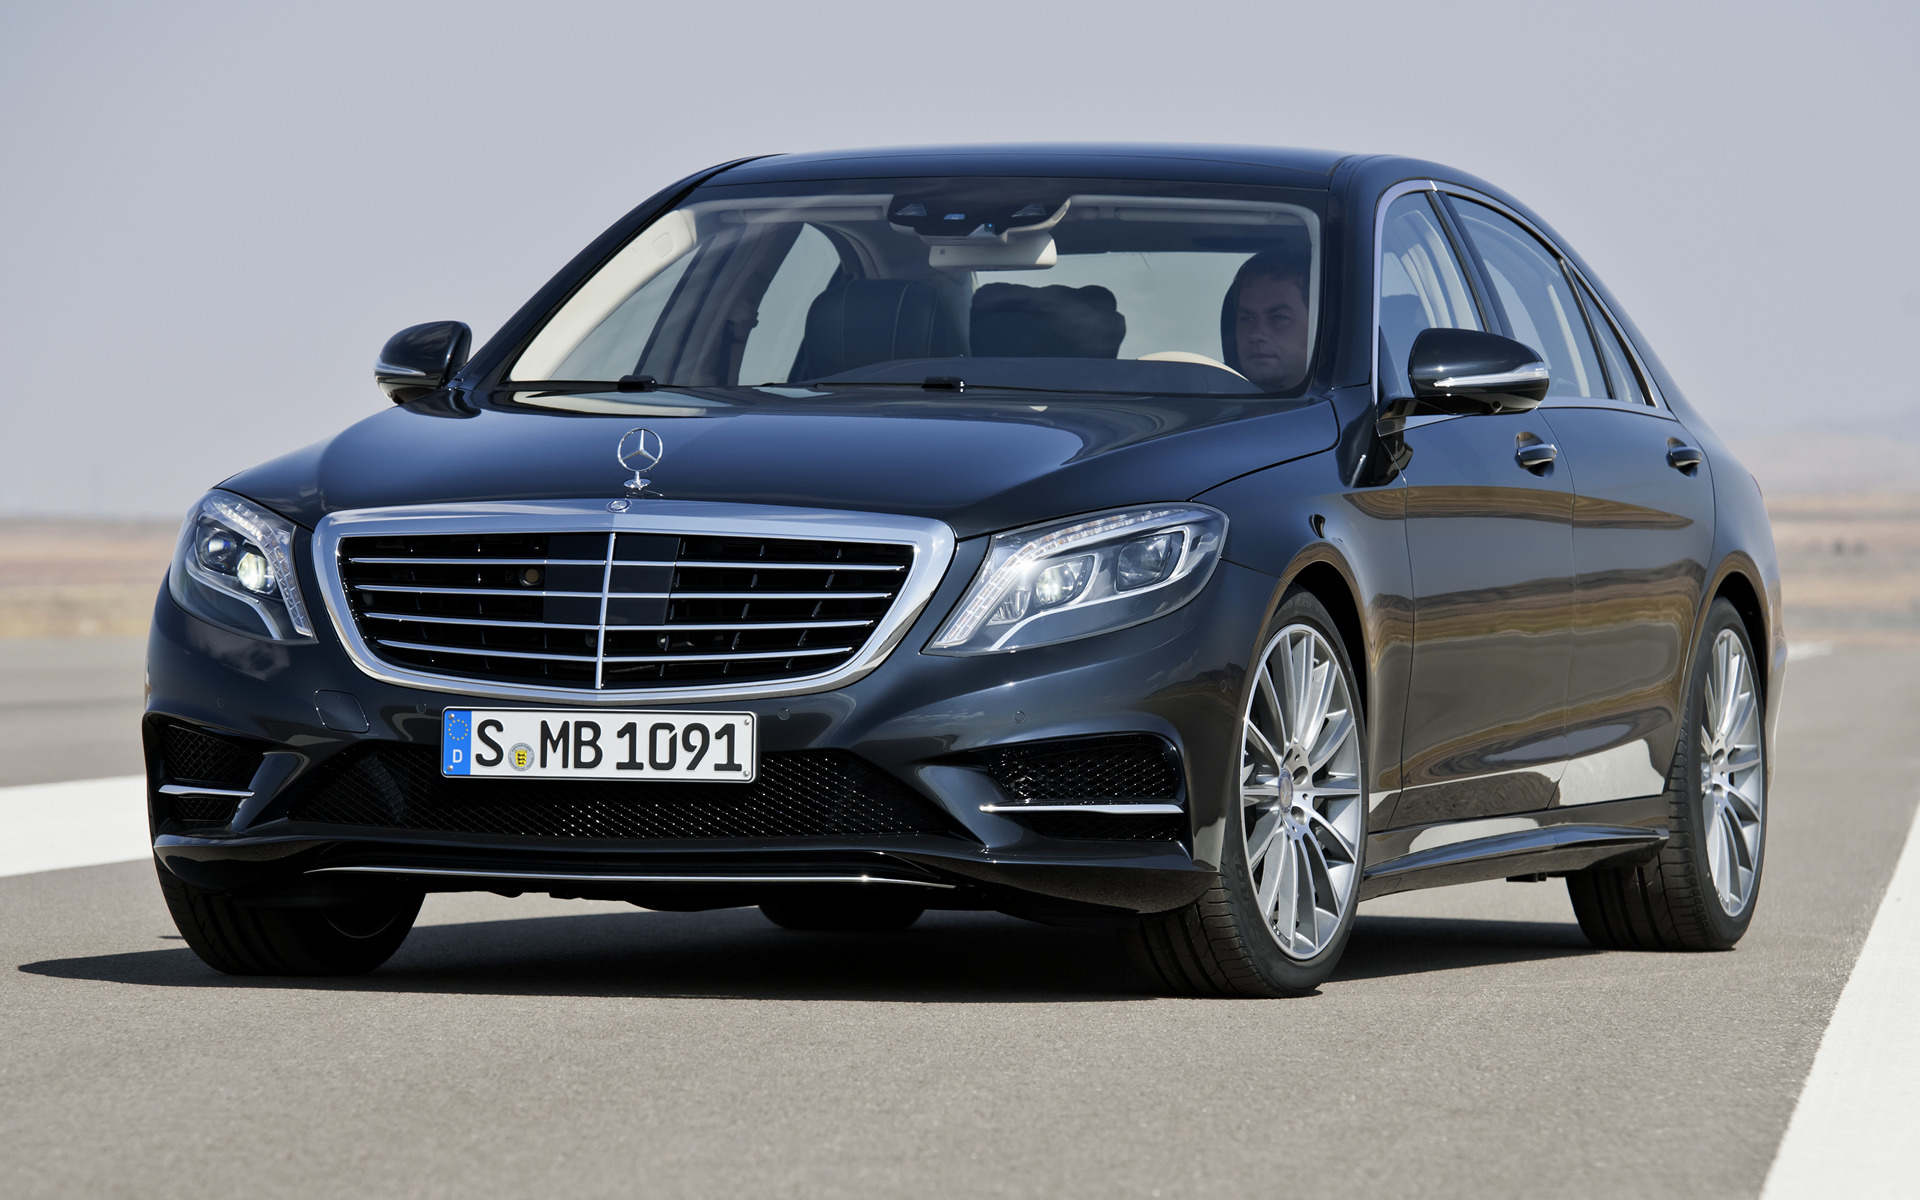 Mercedes benz s class amg styling long 2013 wallpapers for Mercedes benz long